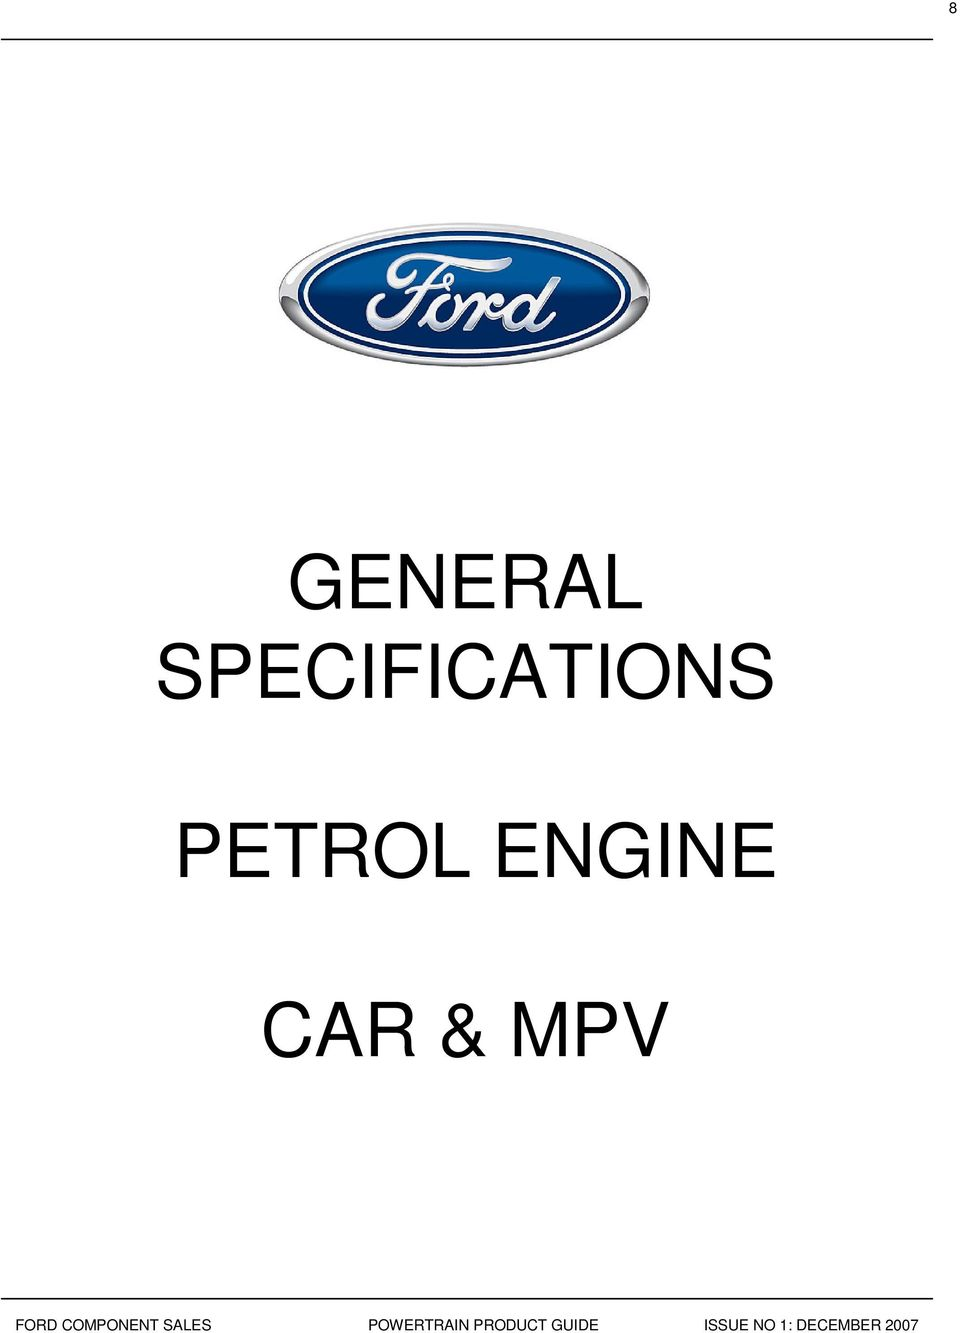 12 PETROL ENGINES Duratec Valencia, Spain 4 Cylinders in-line DOHC Number  of valves 16 Torque 55 kw (75PS) at 6000 rpm 110 Nm at 4000 rpm 1242 cc  Bore and ...